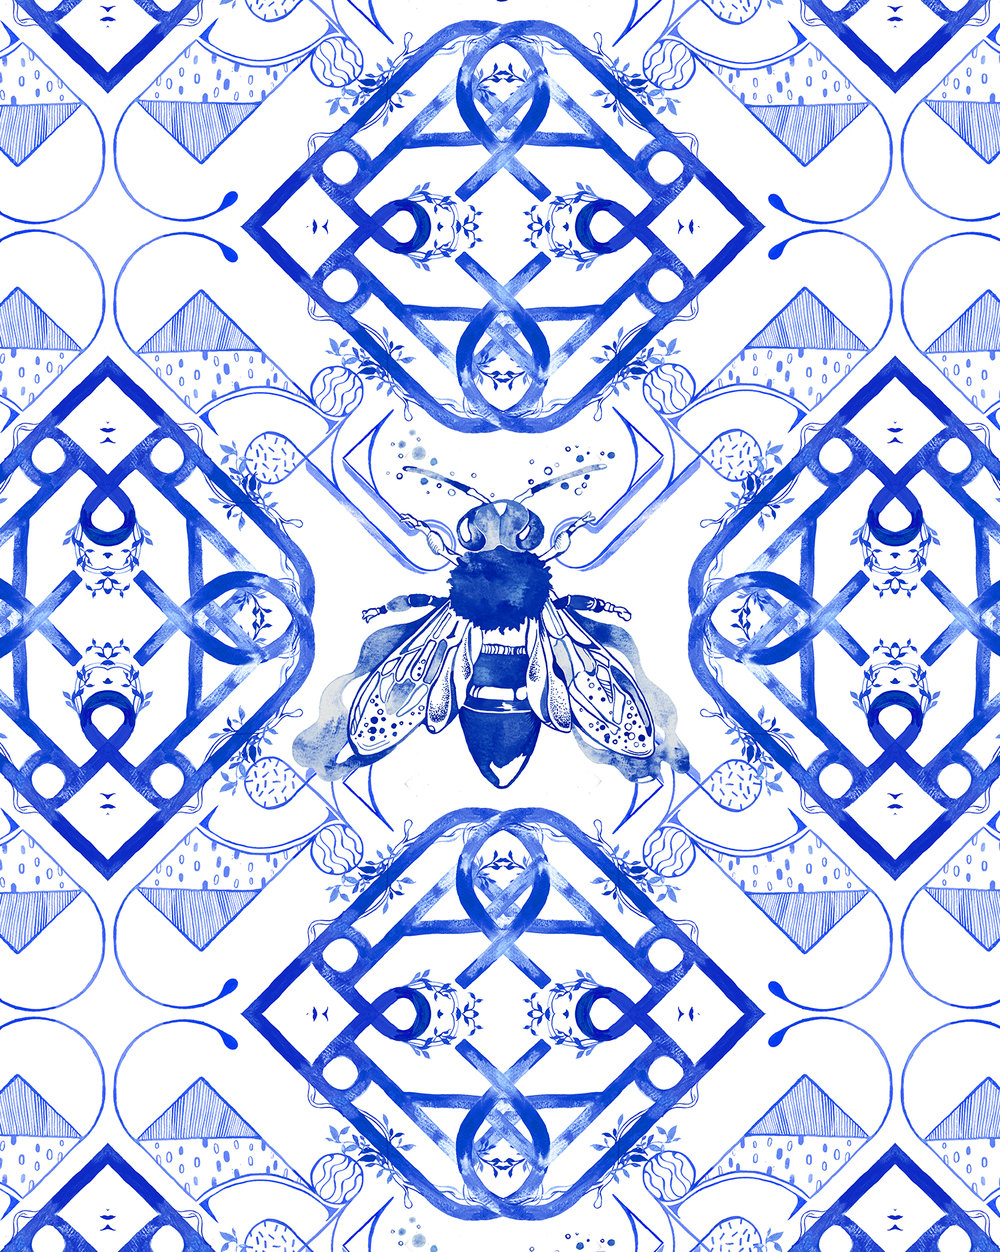 PommeChan_Bee Tiles Pattern3 copy.jpg